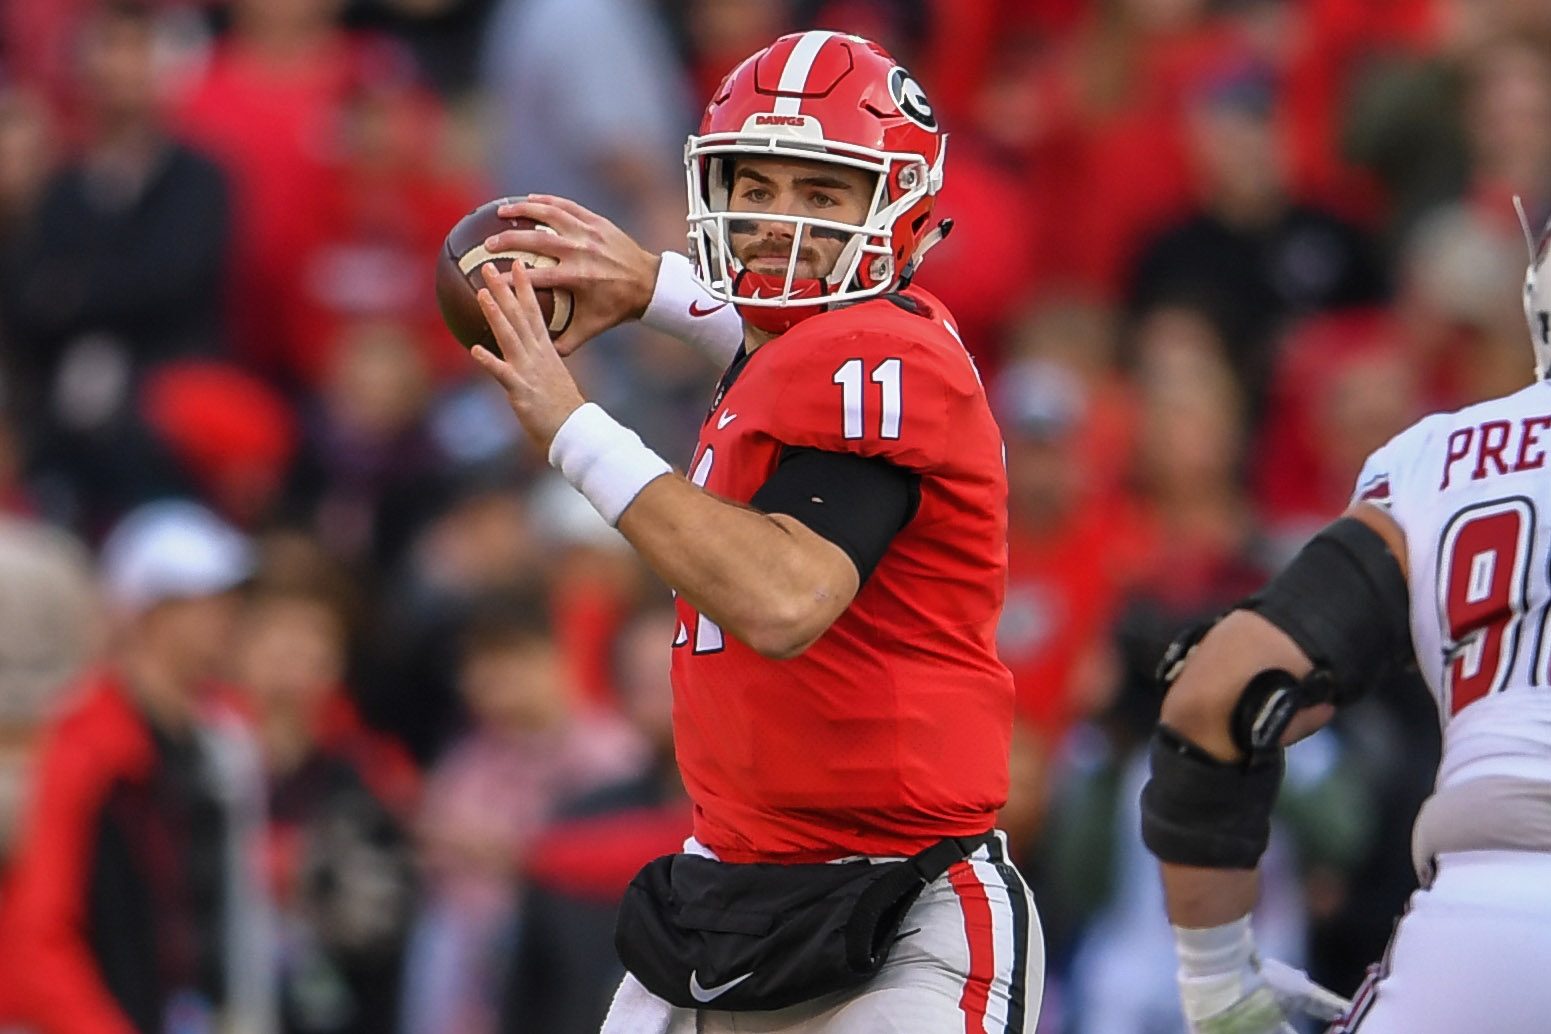 The SEC's top 5 Heisman Trophy candidates for 2019